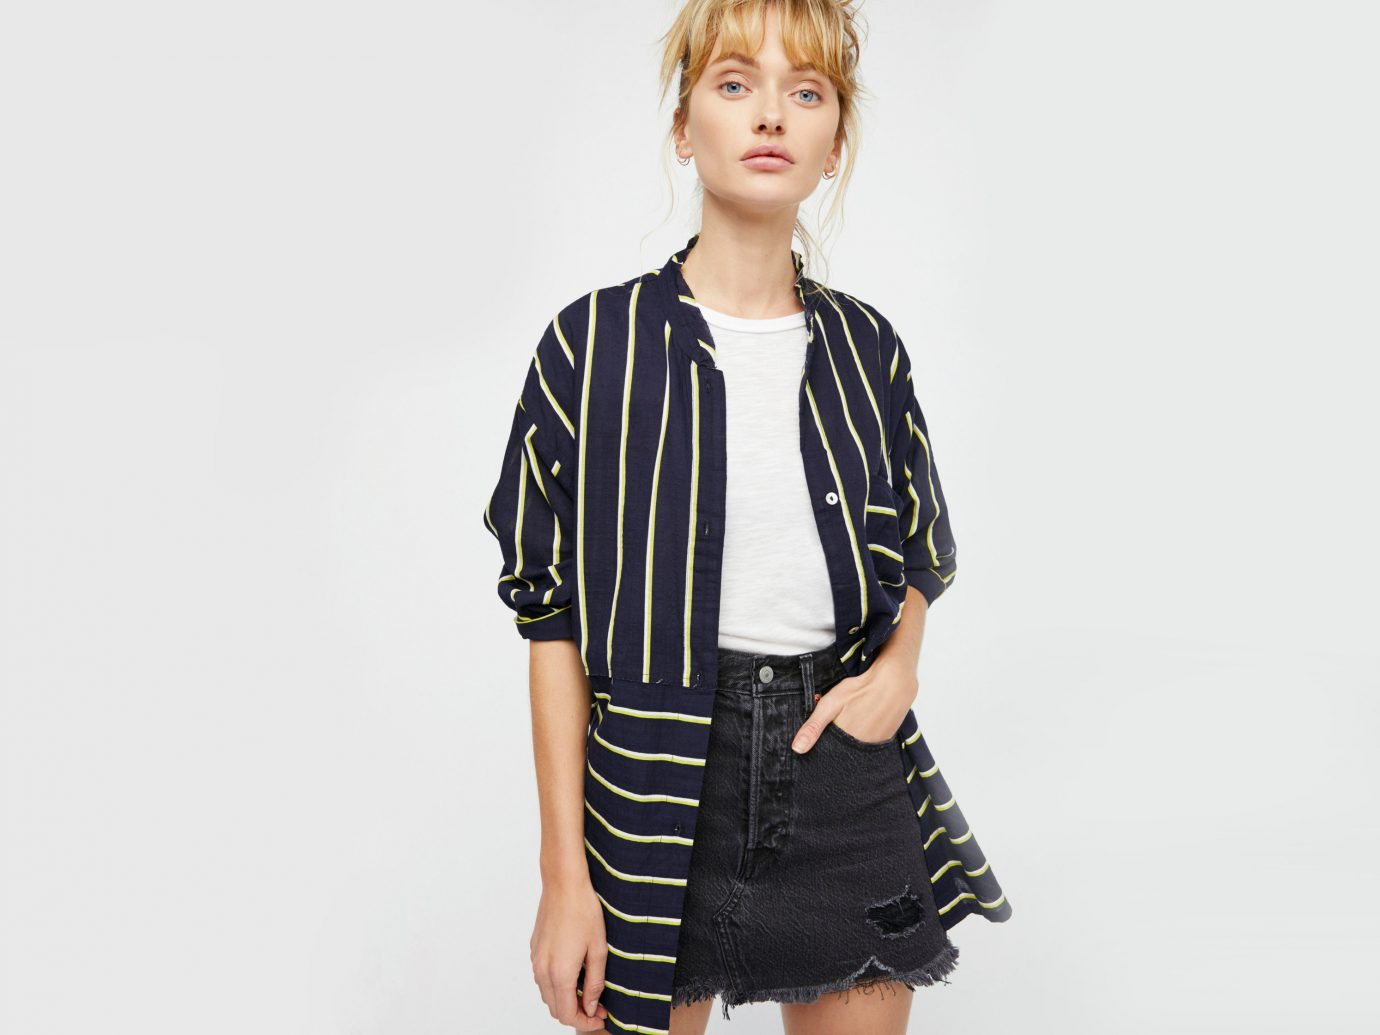 Style + Design person clothing fashion model standing sleeve young outerwear posing fashion neck pattern t shirt girl shirt plaid fashion design dressed skirt